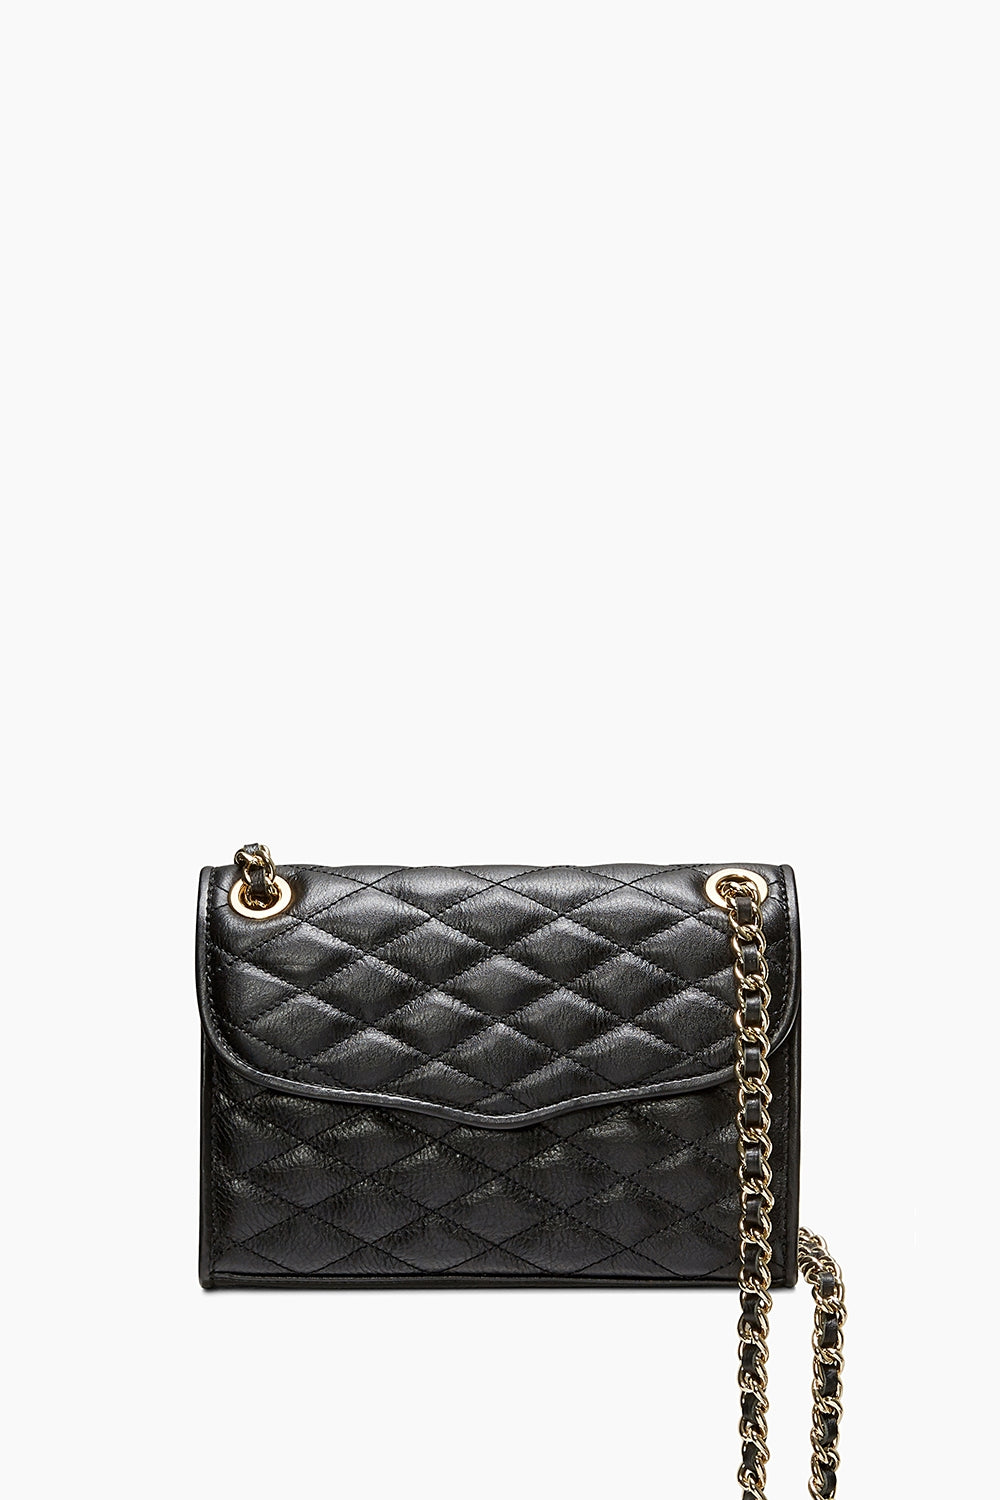 crossbody affair with quilt convertible rebecca minkoff studs quilted mini